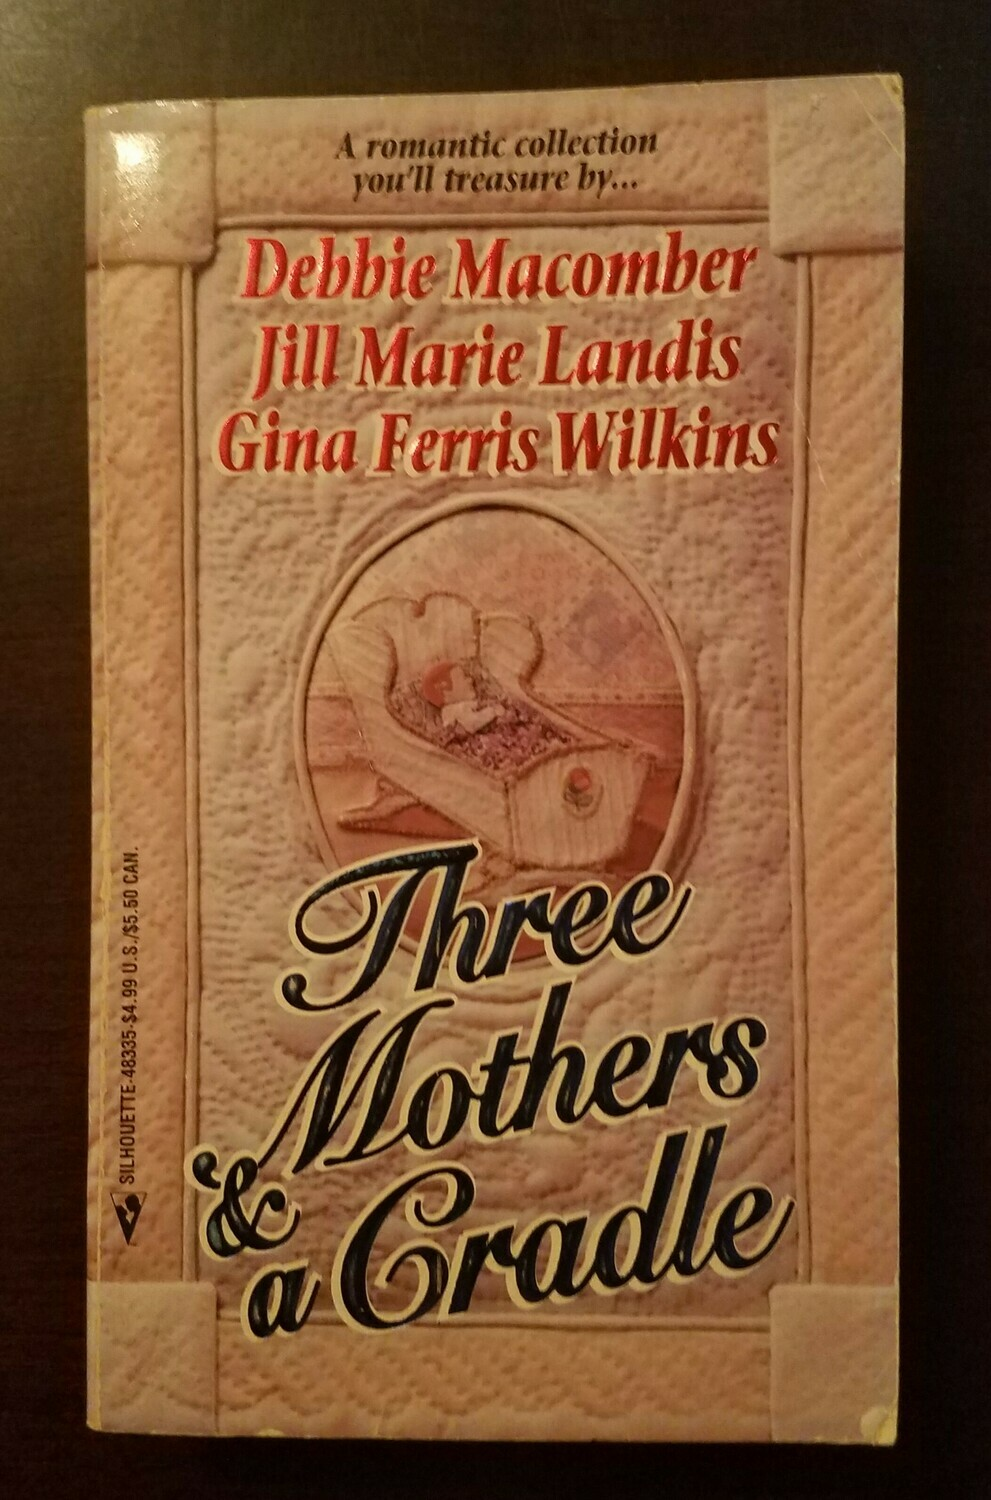 Three Mothers and a Cradle by Debbie Macomber, Jill Marie Landis, and Gina Ferris Wilkins